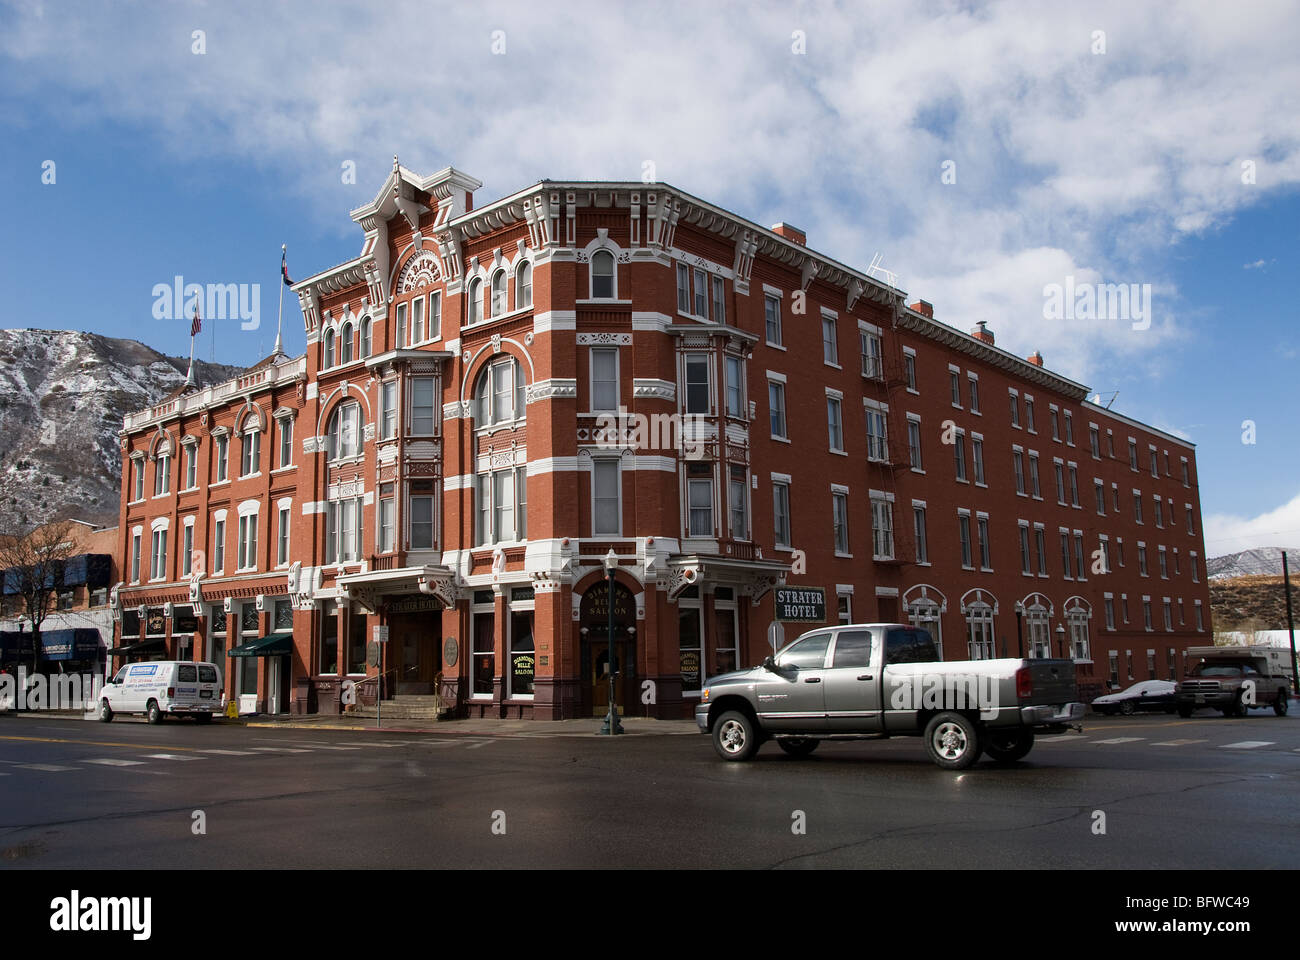 strater hotel and downtown durango colorado usa stock. Black Bedroom Furniture Sets. Home Design Ideas